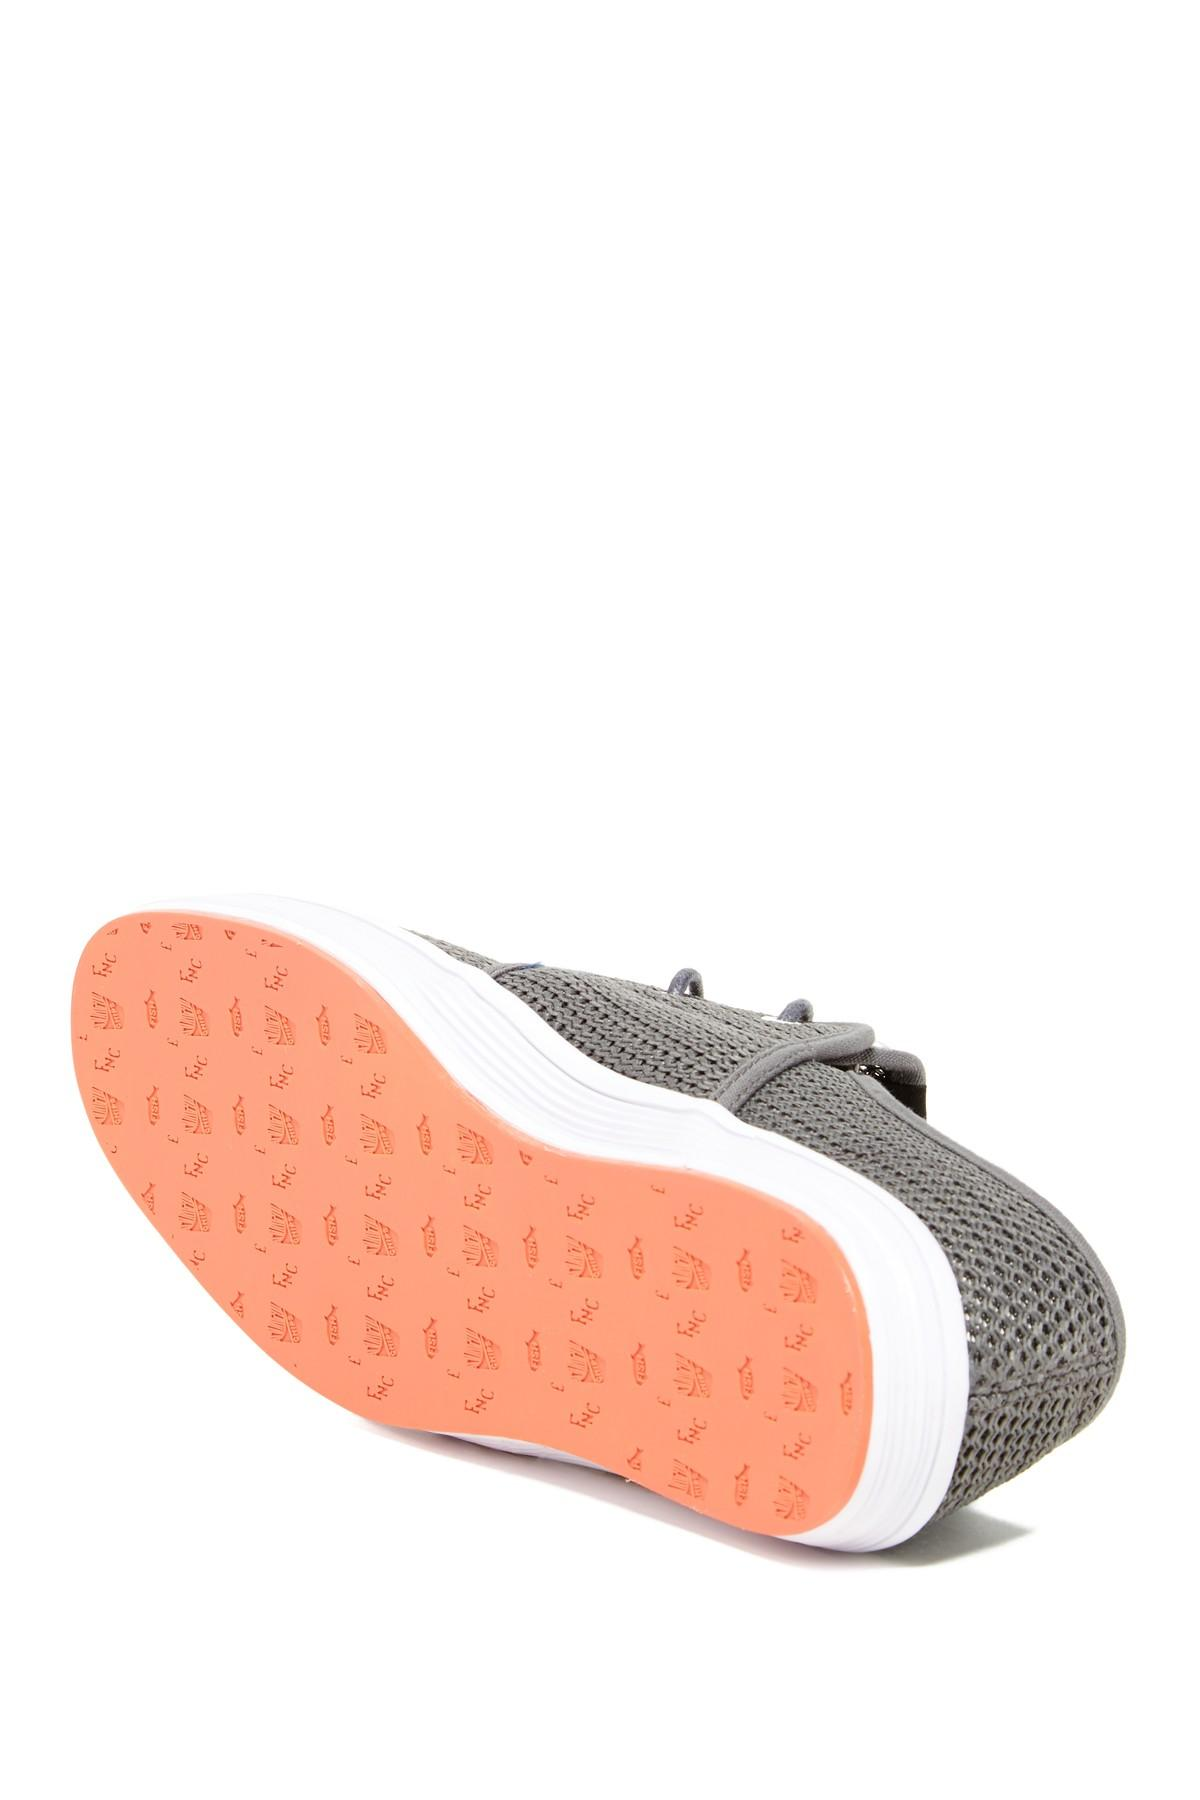 Fish n chips spam 2 mesh sneaker in gray for men lyst for Fish and chips shoes